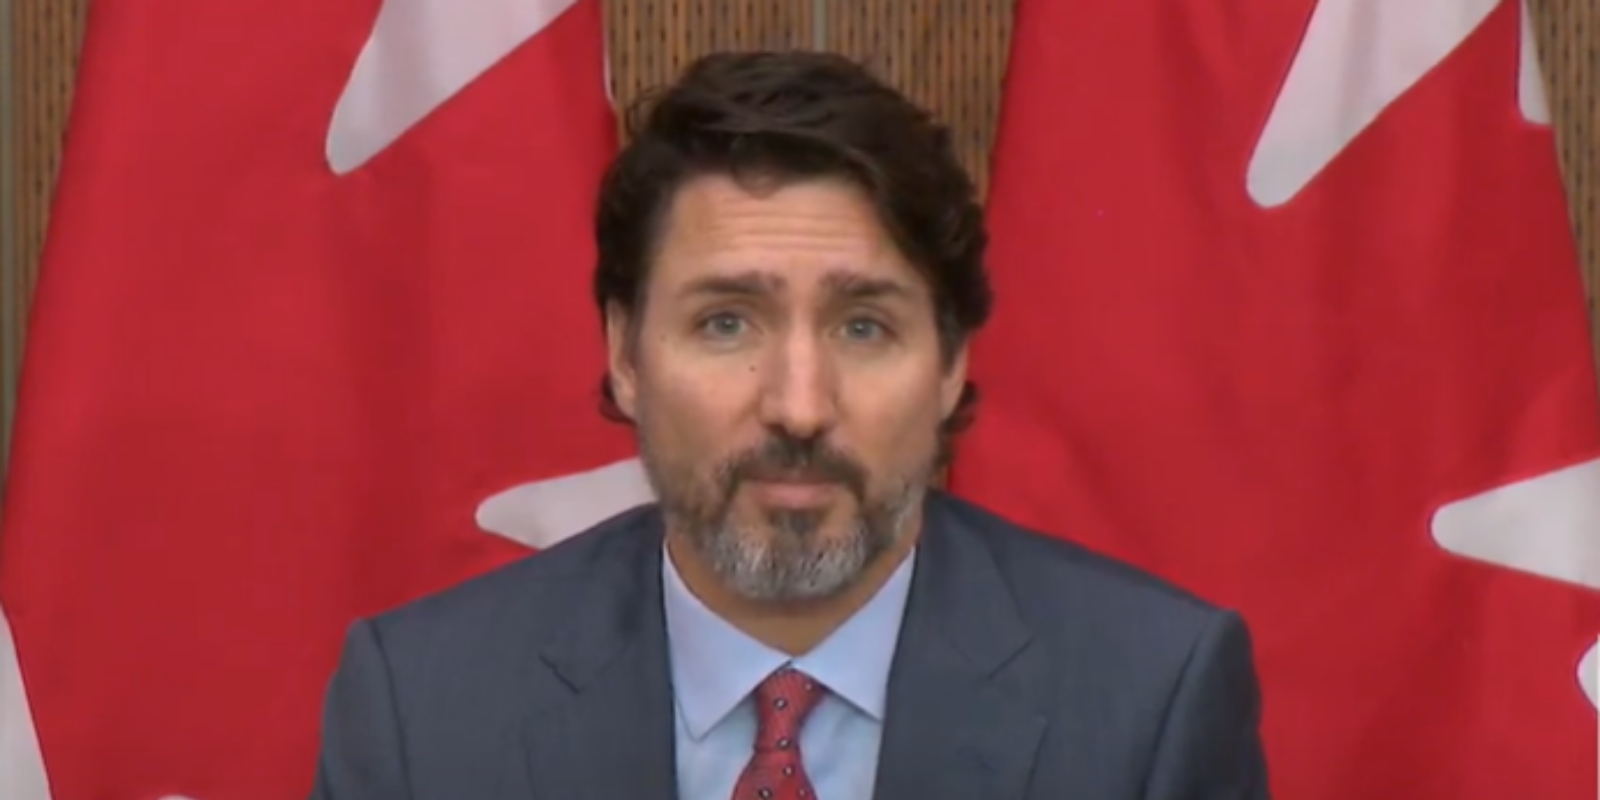 BREAKING: Trudeau says Canadians may not be able to gather during holidays due to COVID